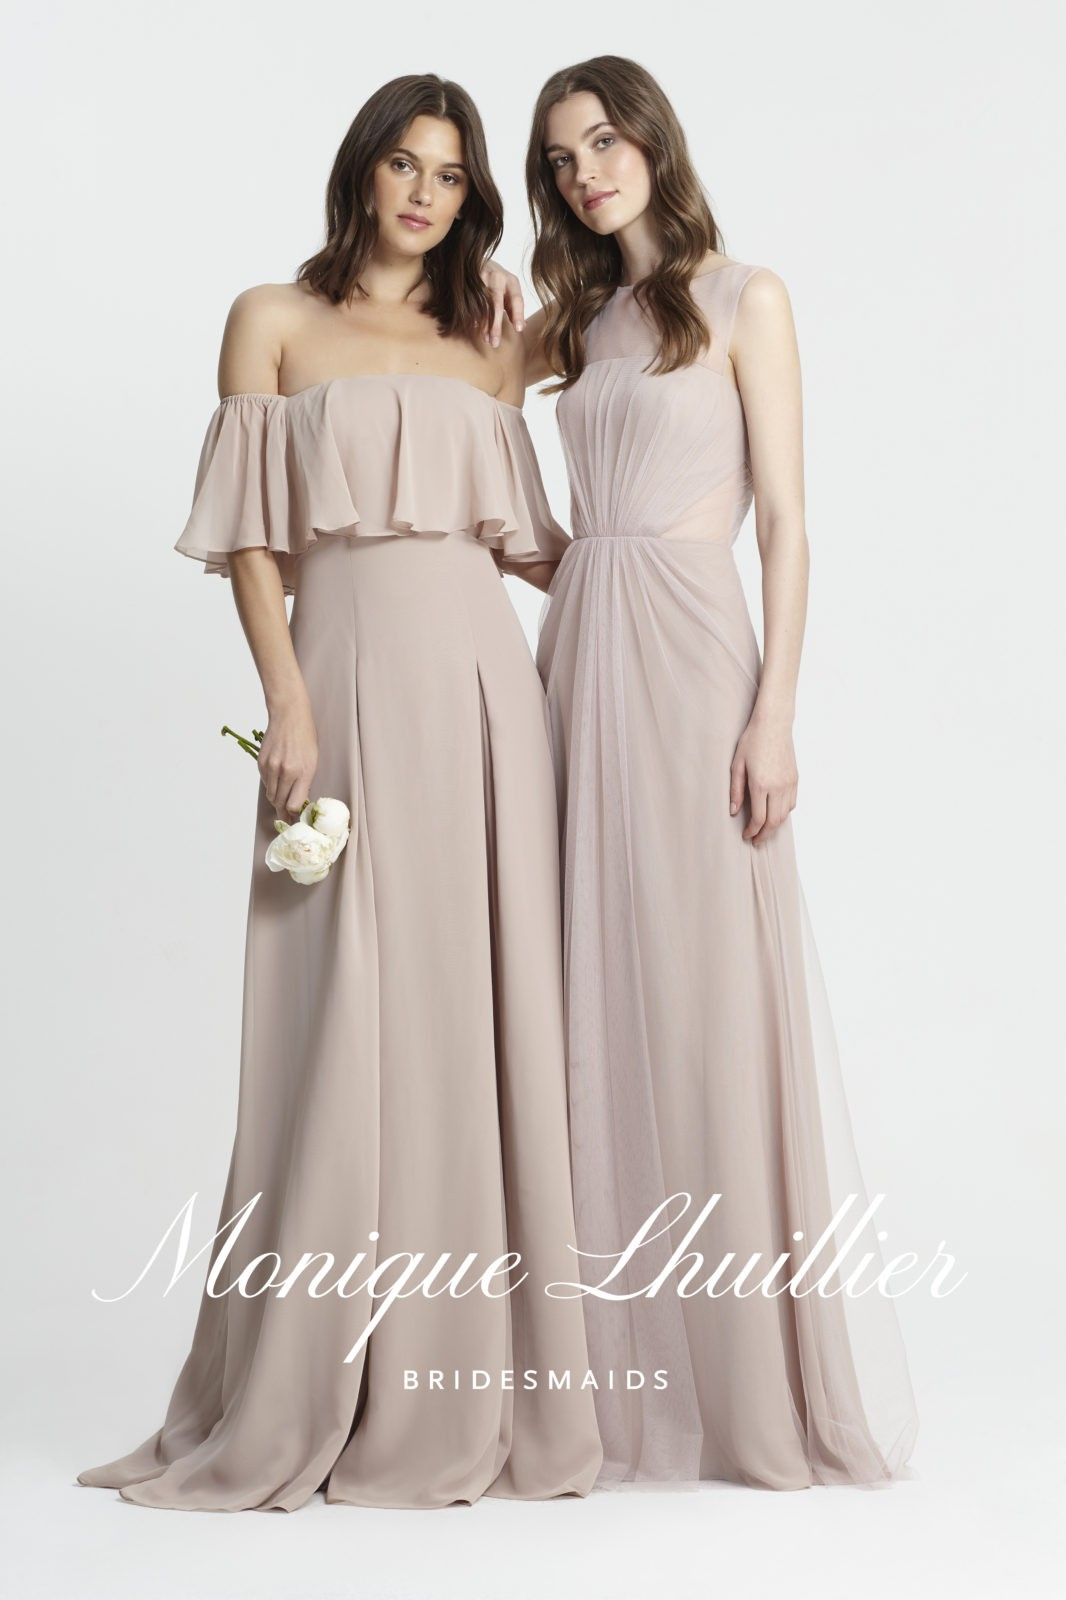 Monique Lhuillier Bridesmaids Trunk Show